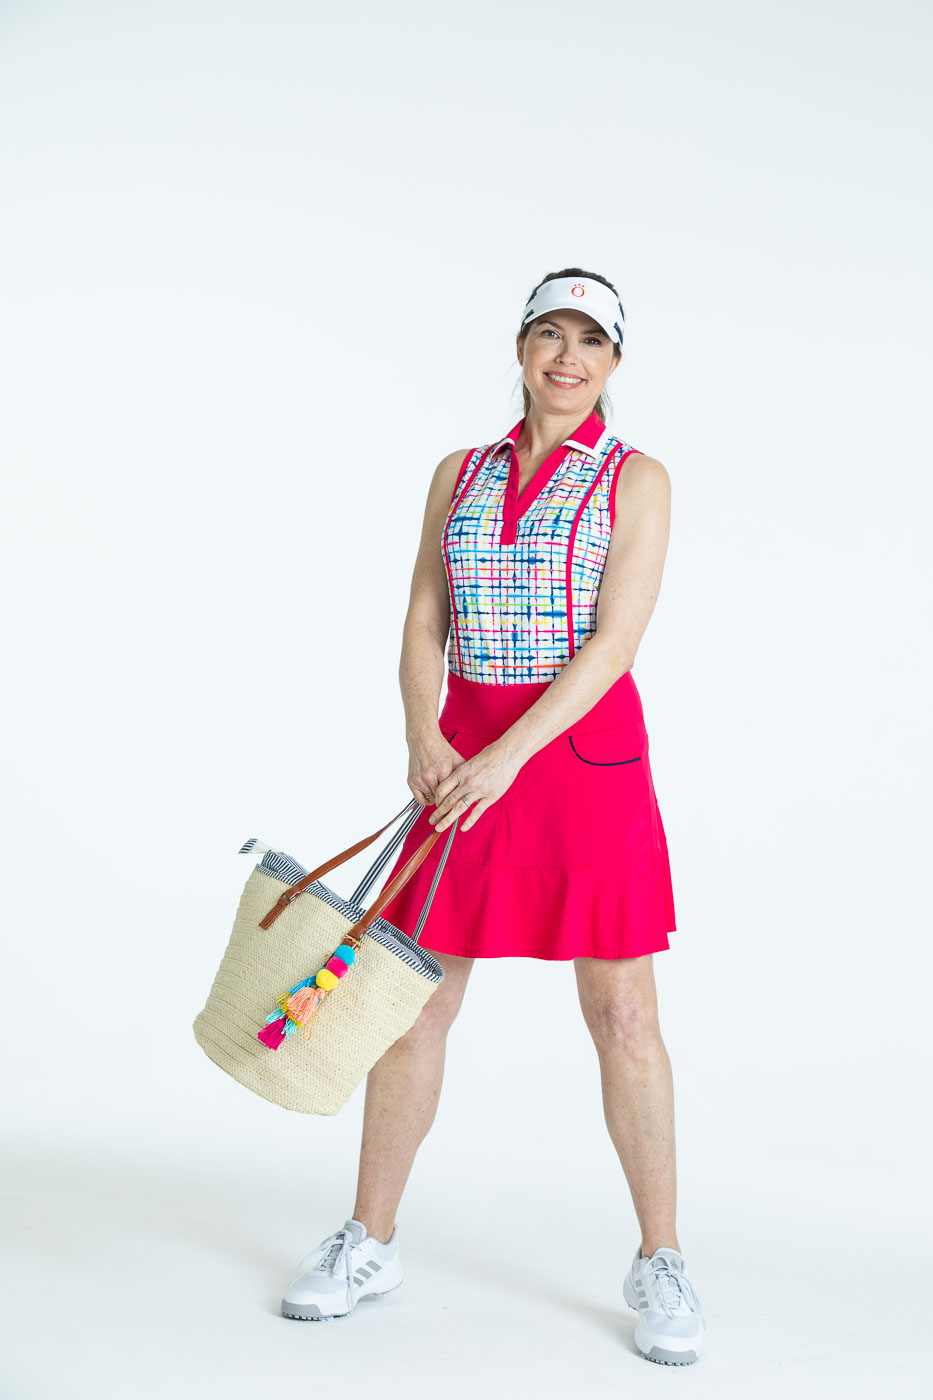 Smiling woman golfer in a blurred lines Shape Shifter sleeveless golf top, a raspberry red Fit and Flare Golf Skort, a white We've Got You Covered Hat, holding a bag.